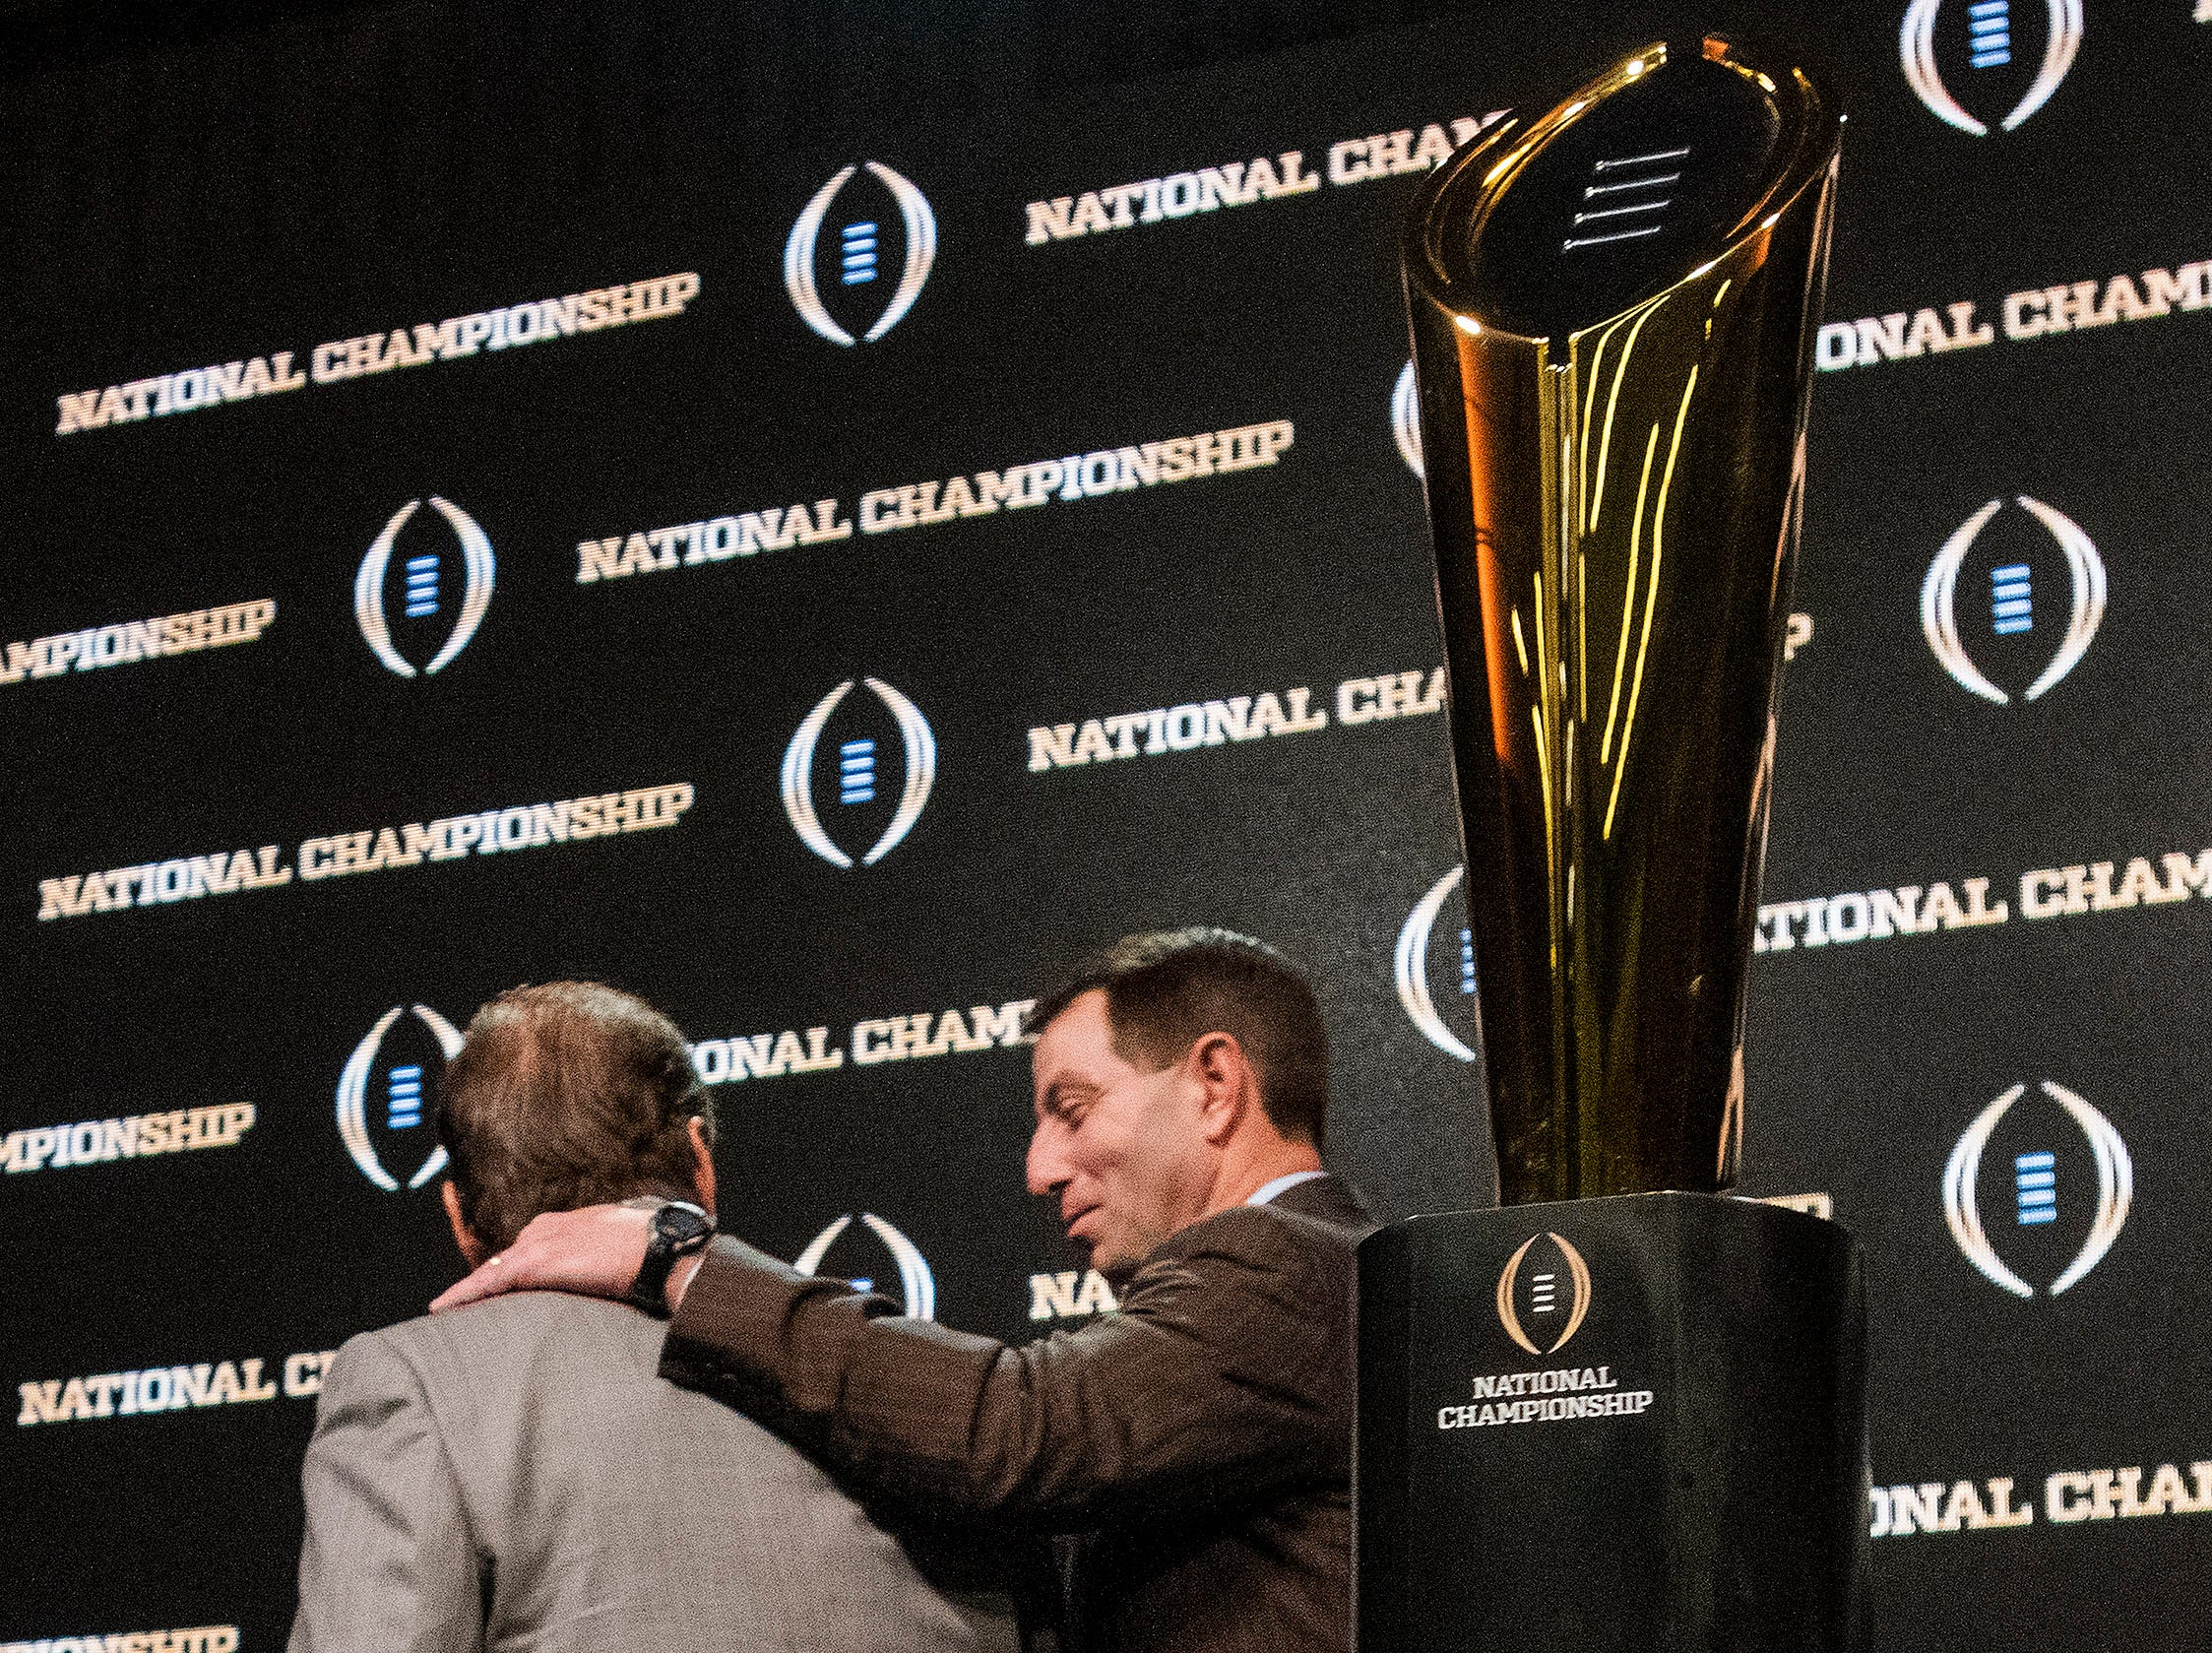 Alabama head coach Nick Saban and Clemson head coach Dabo Swinney  chat as they leave the College Football National Championship coaches press conference in San Jose, Ca., on Sunday January 6, 2019.